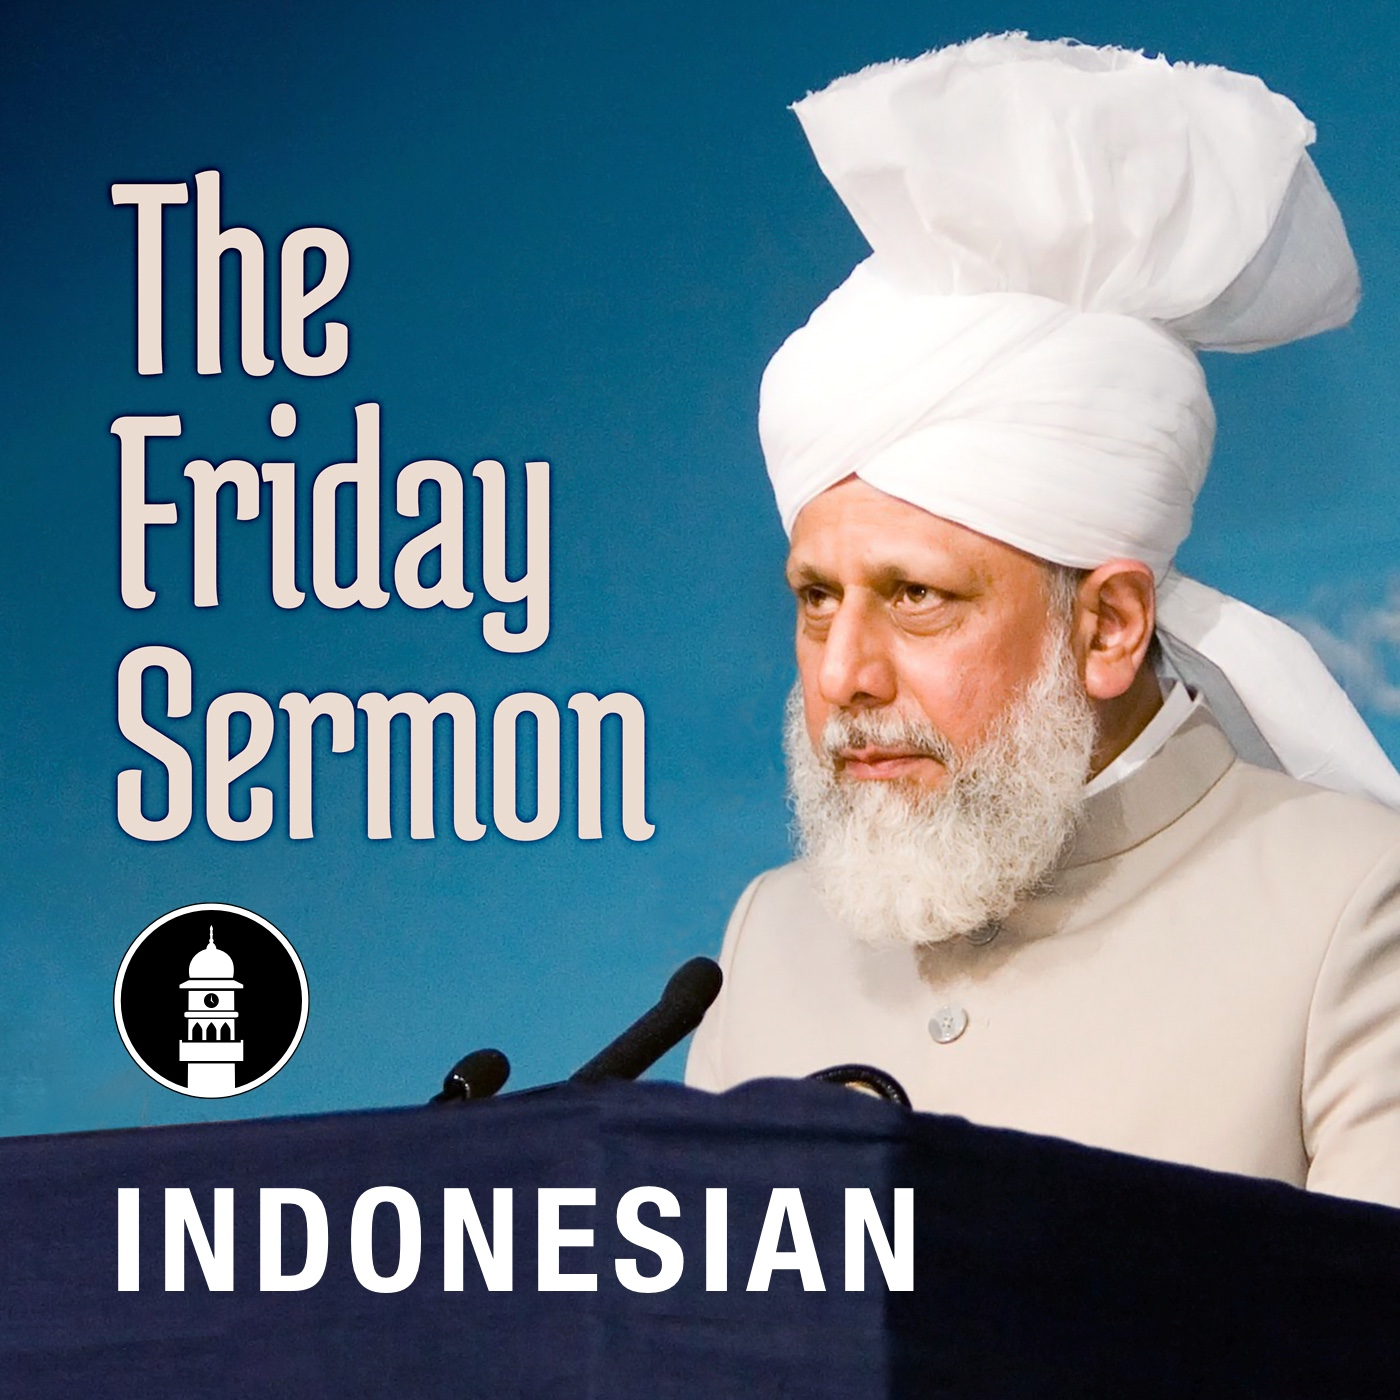 Indonesian Friday Sermon by Head of Ahmadiyya Muslim Community